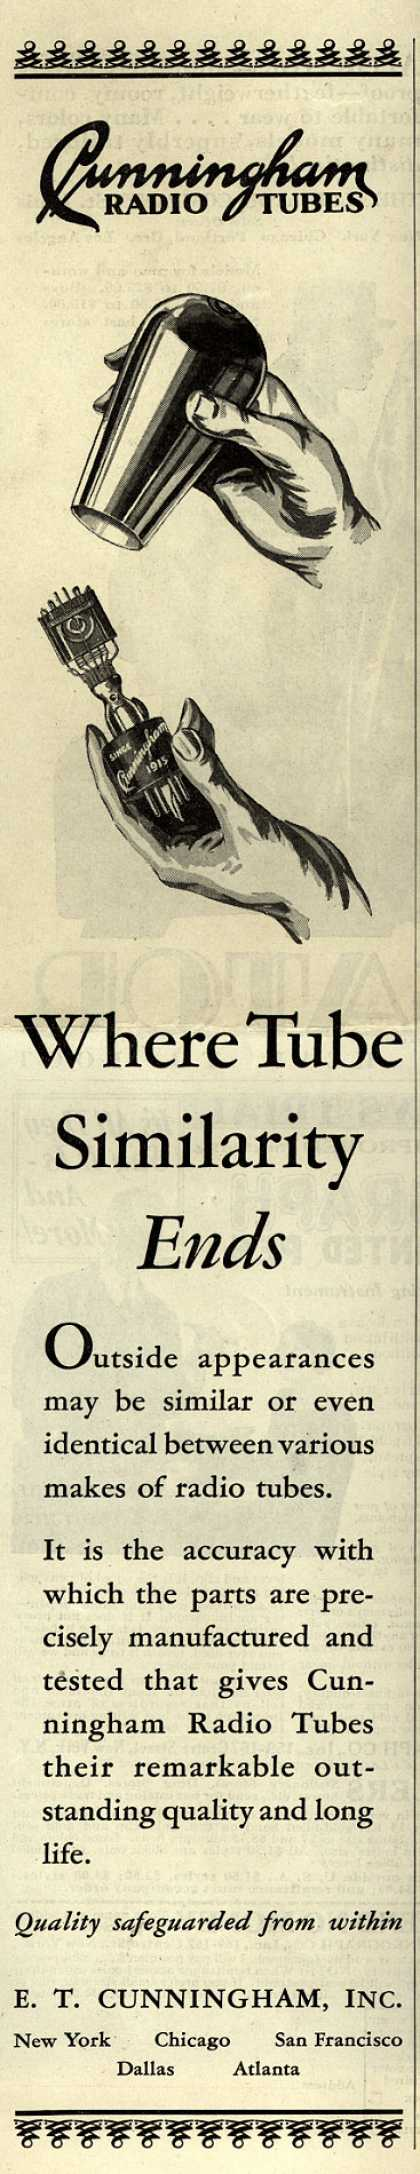 E.T. Cunningham's Radio Tubes – Where Tube Similarity Ends (1929)